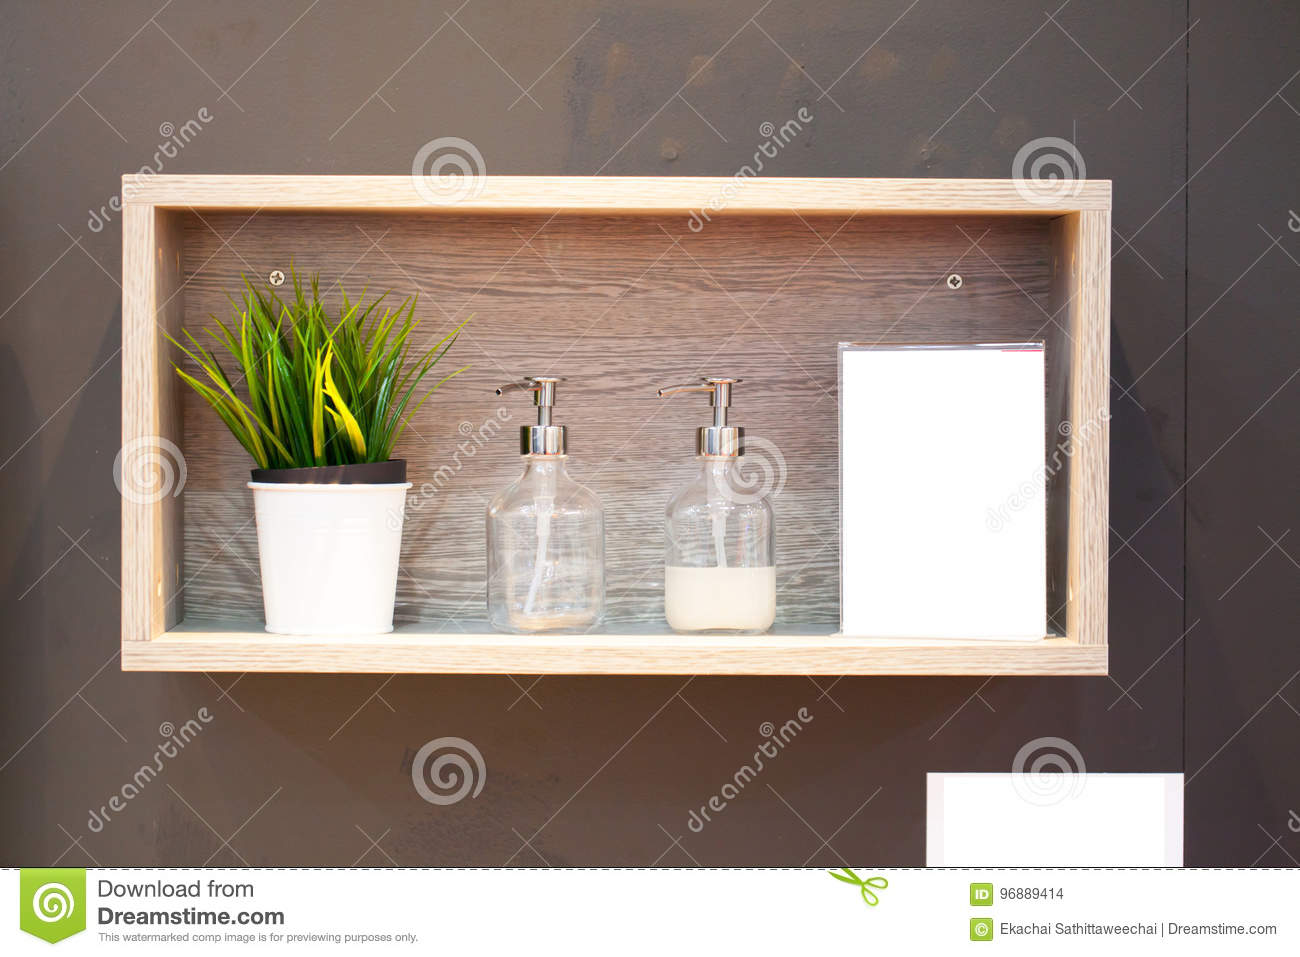 Soap Dispensers And Small Tree In A Wooden Shelf Stock Photo Image Of Ceramic Style 96889414